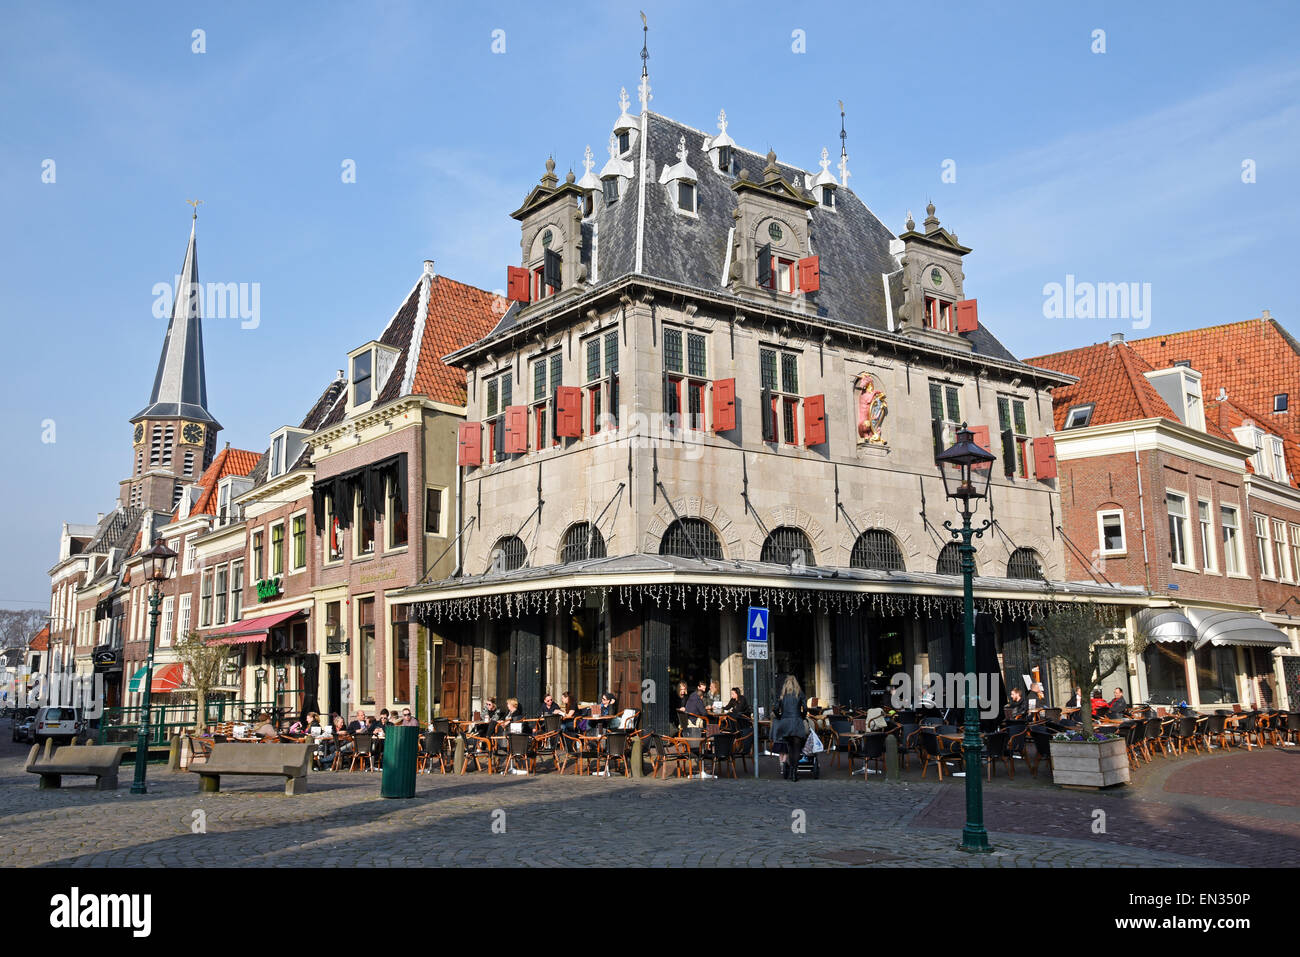 Restaurant, former historical cheese scale, De Roode Steen square, Hoorn, province of North Holland, The Netherlands - Stock Image